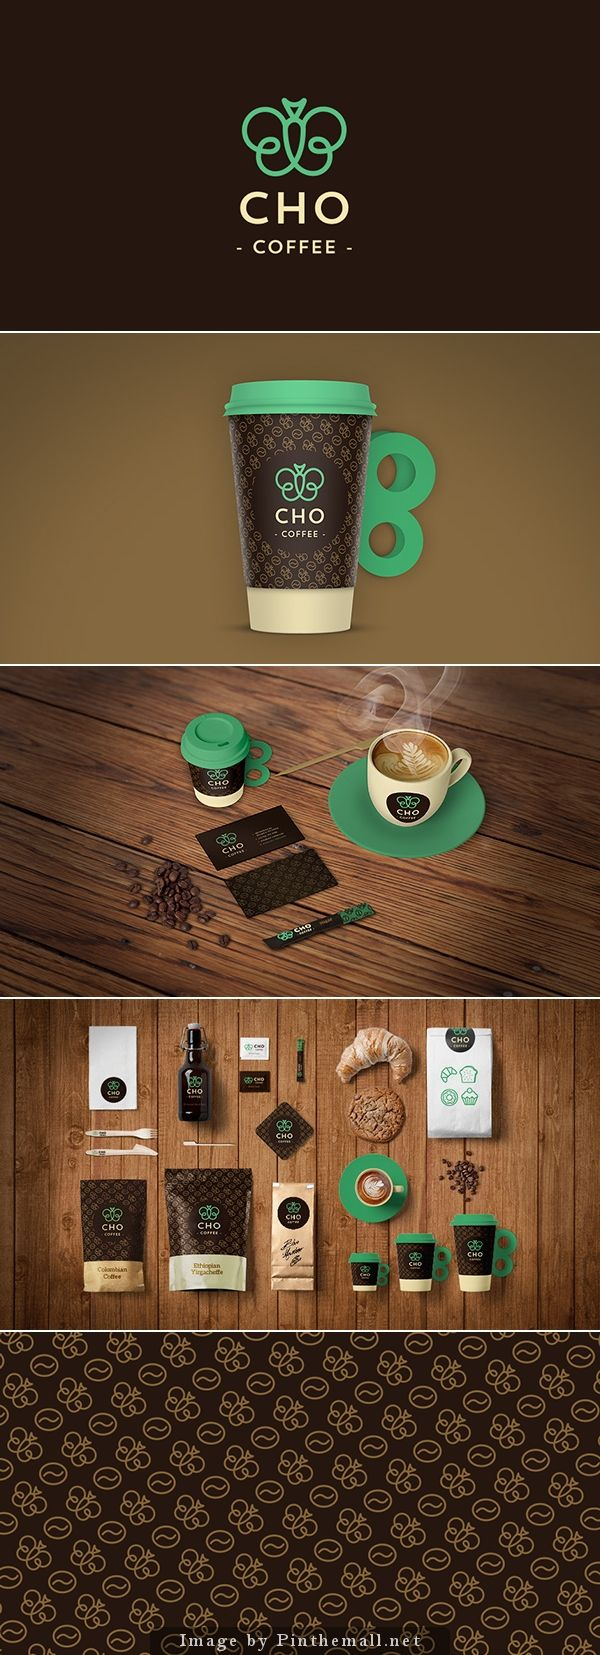 Designgrafico Papelaria Identidadevisual Cafe Marrom Coffee Branding Branding Shop Coffee Logo